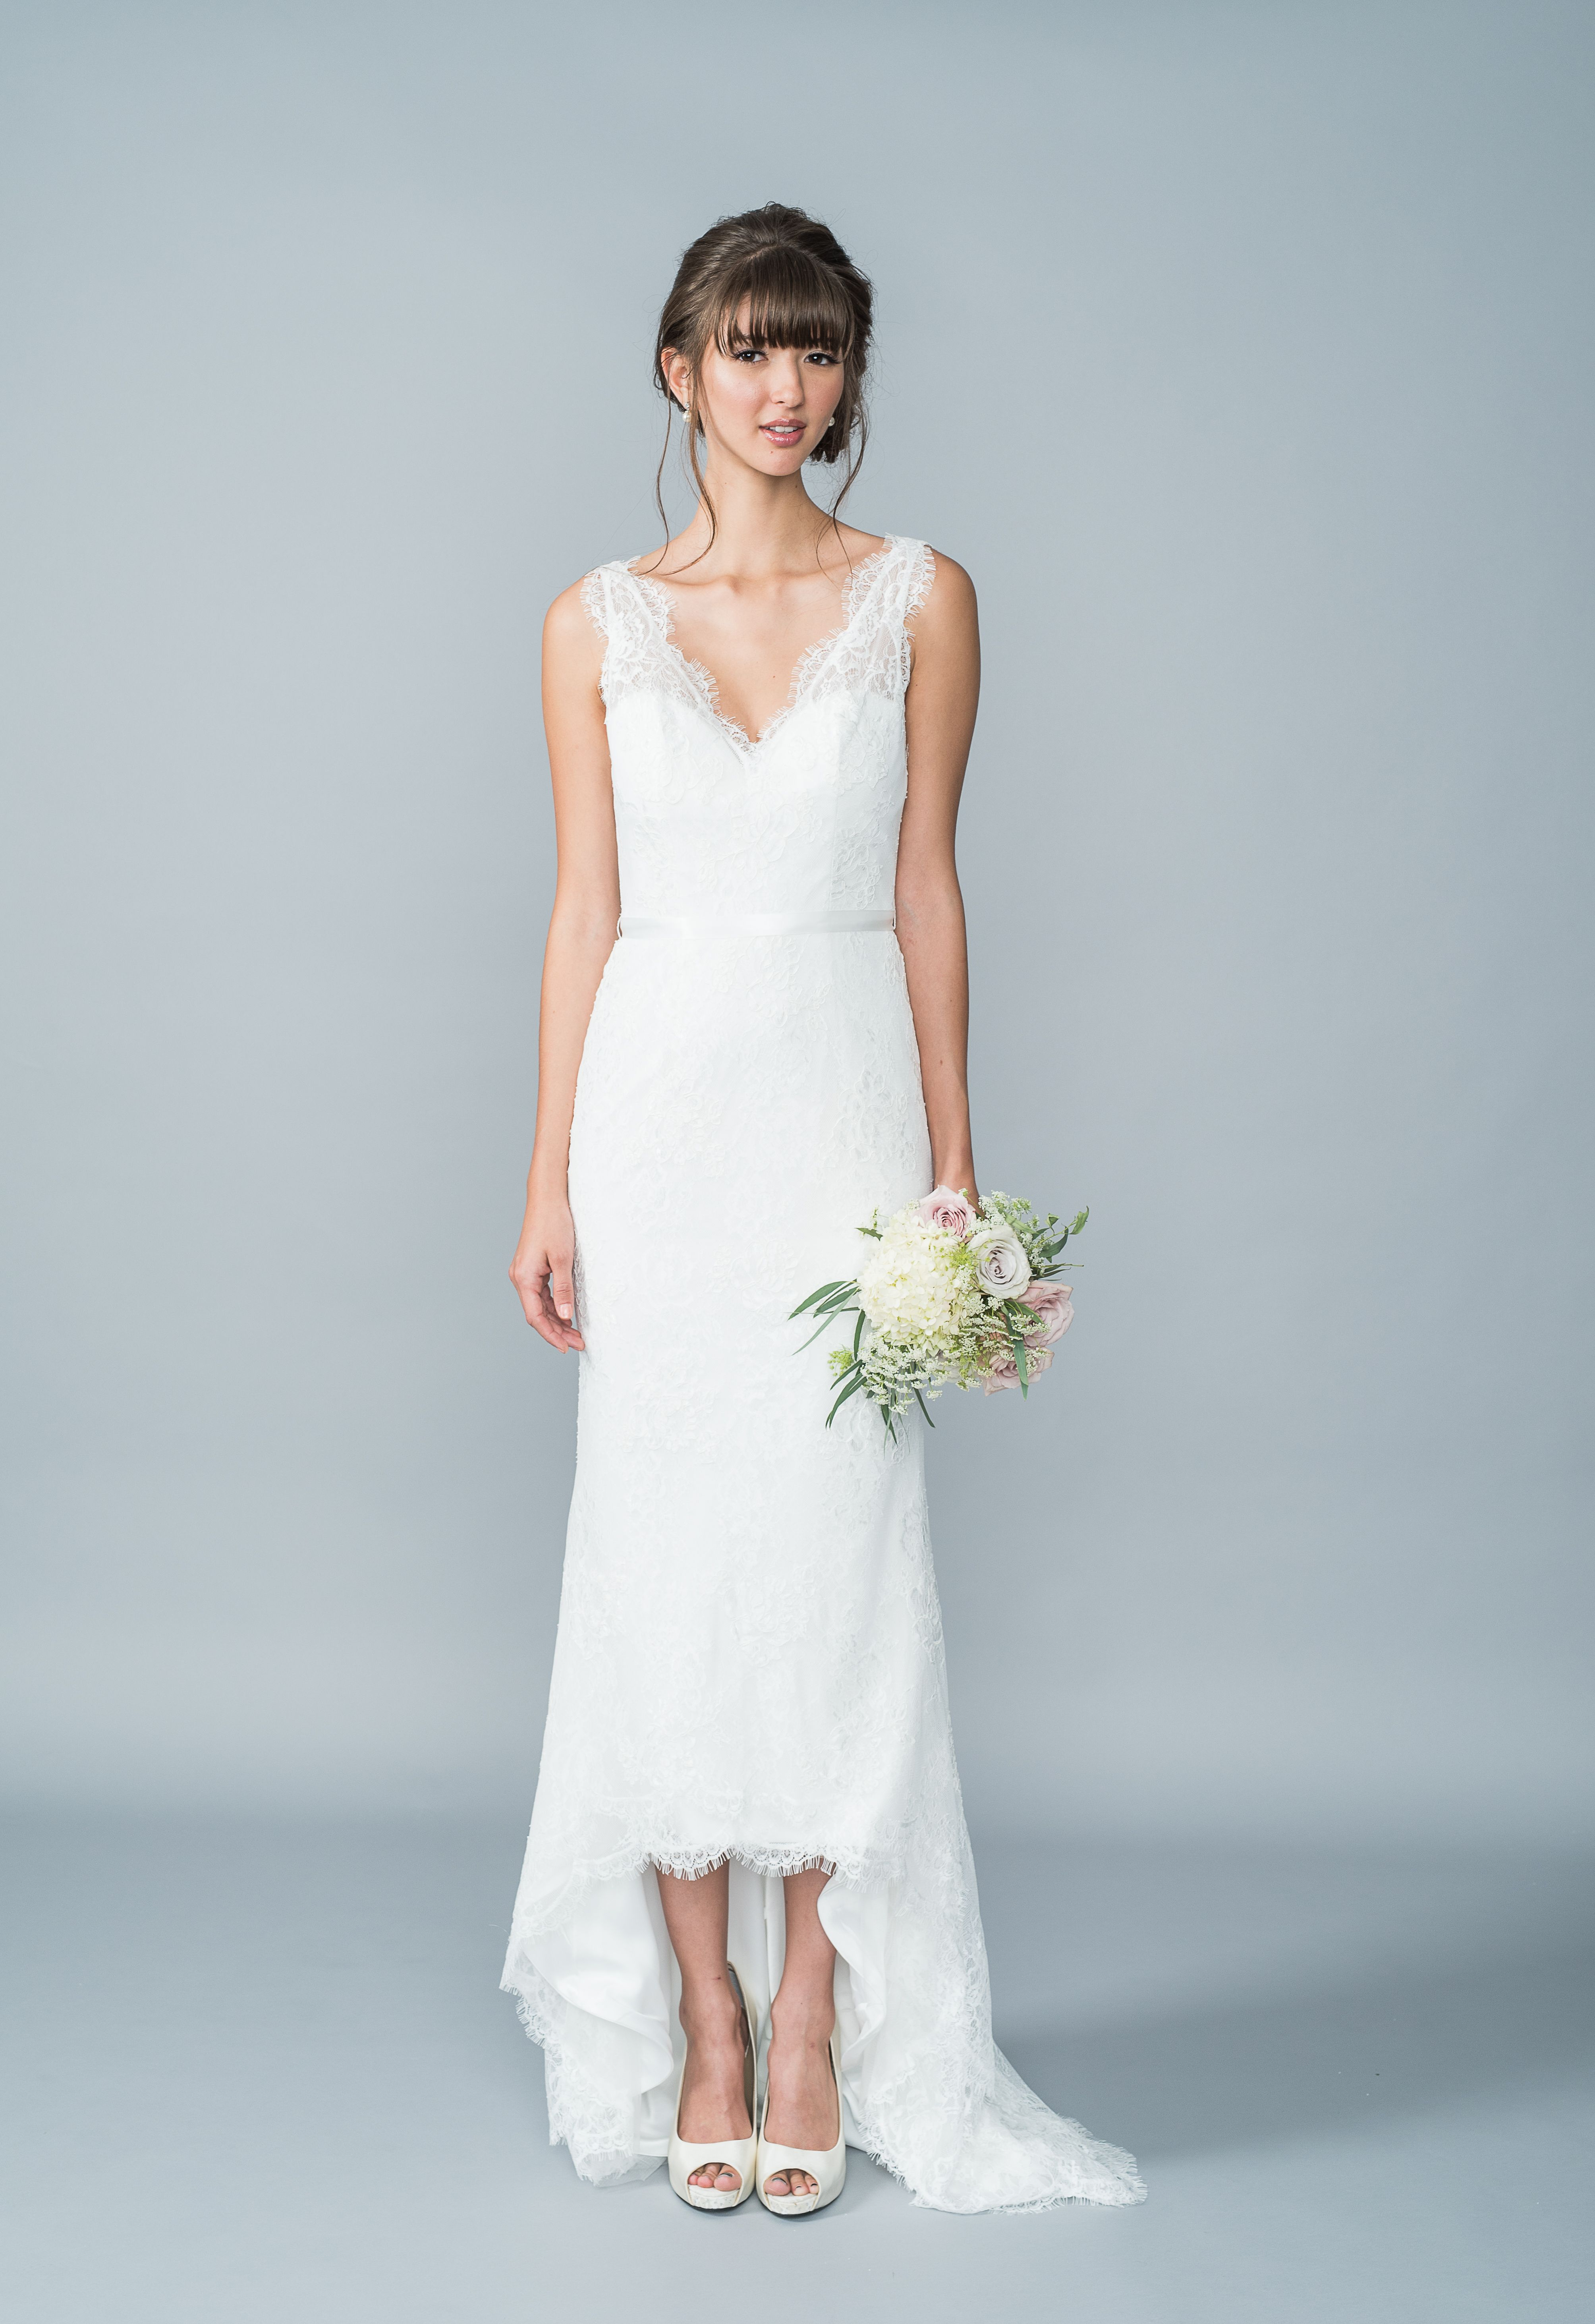 This is our Hilary gown from the 2016 collection